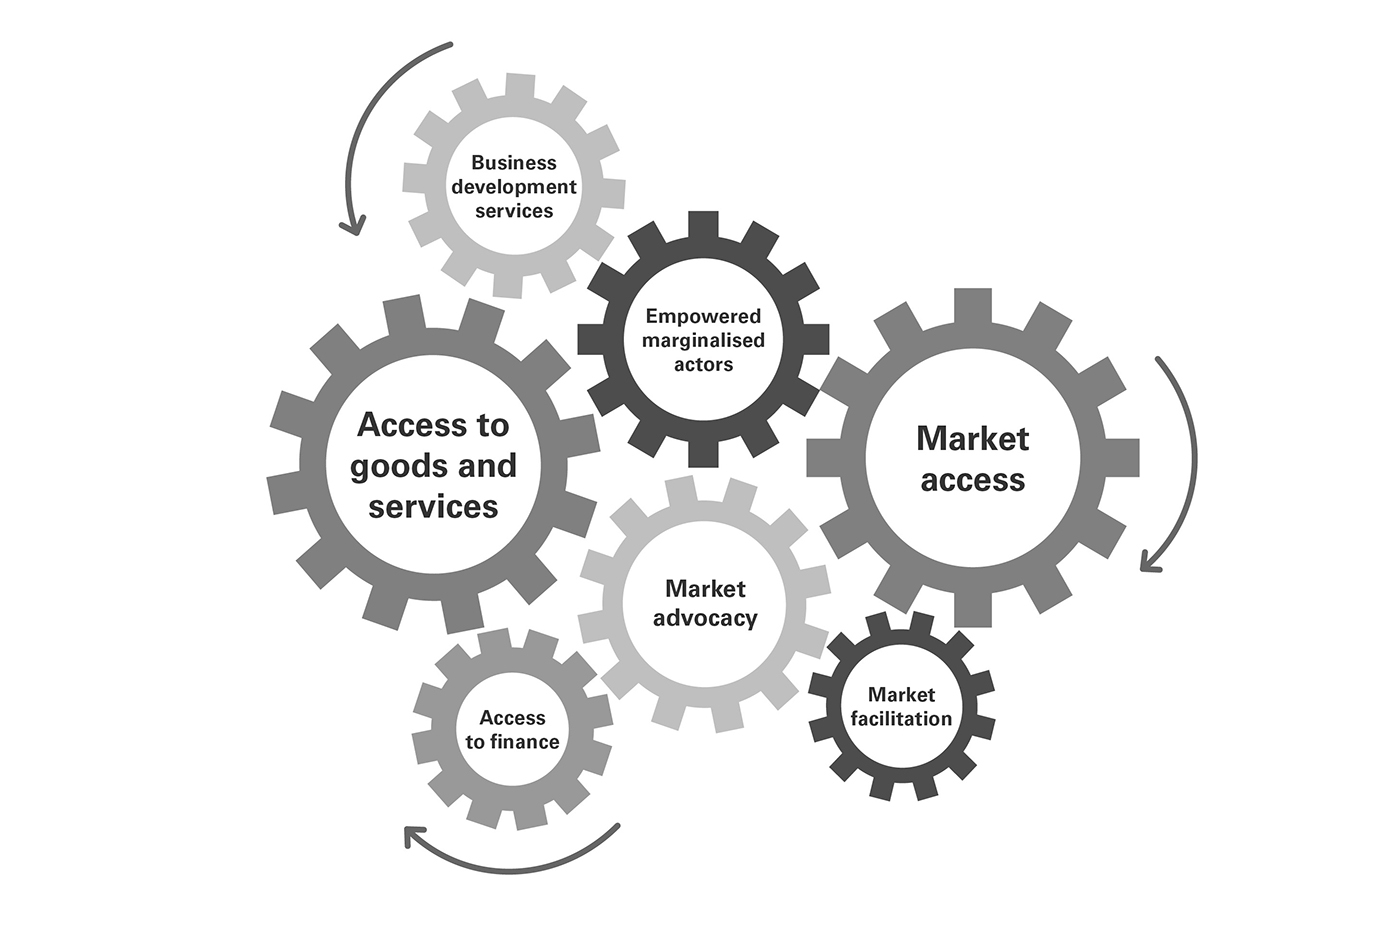 Series of cogs that demonstrate how inclusive markets work by allowing people access to goods and services, and markets.